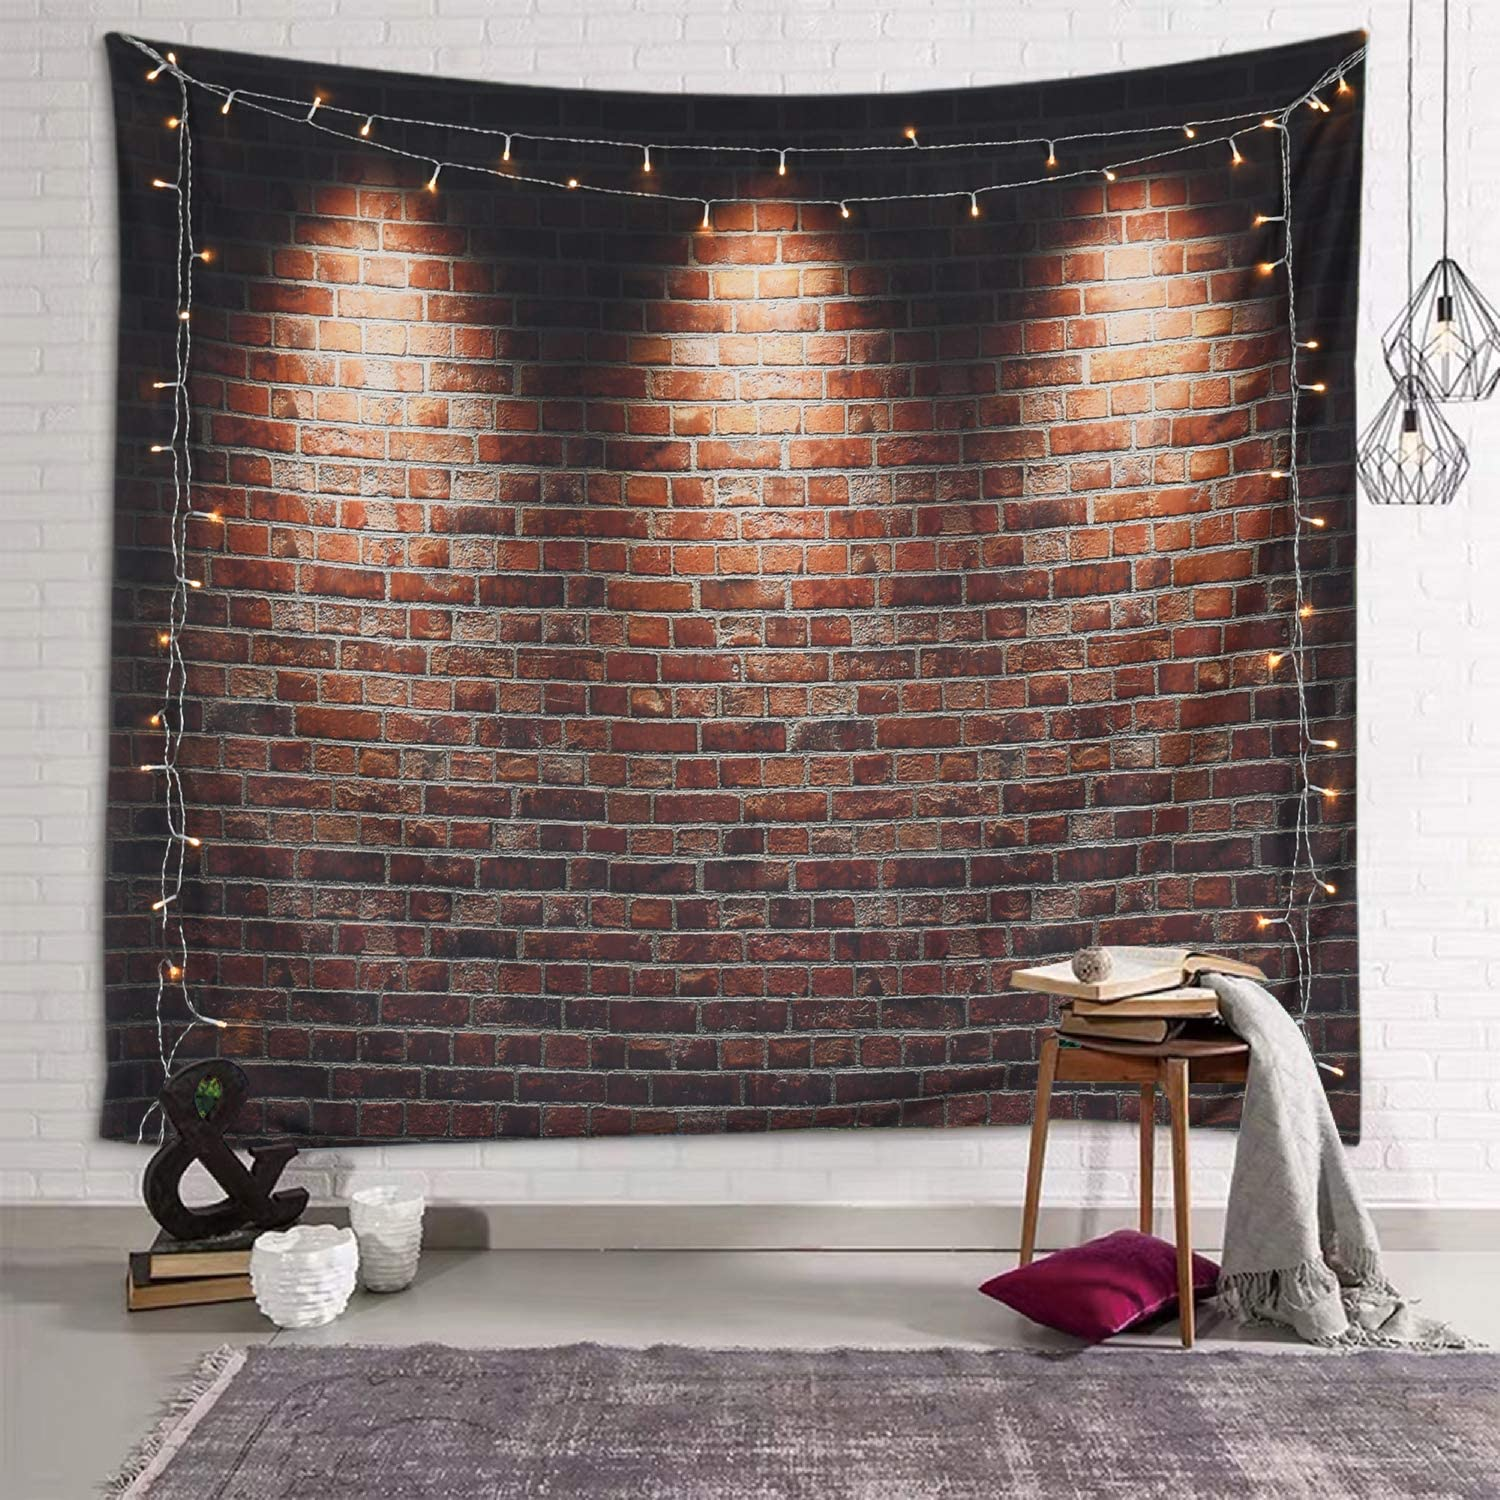 Amazon Com Sevendec Brick Tapestry For Bedroom Aesthetic Wall Tapestry Indie Room Decor For Livingroom Dorm Home W78 X L71 Everything Else